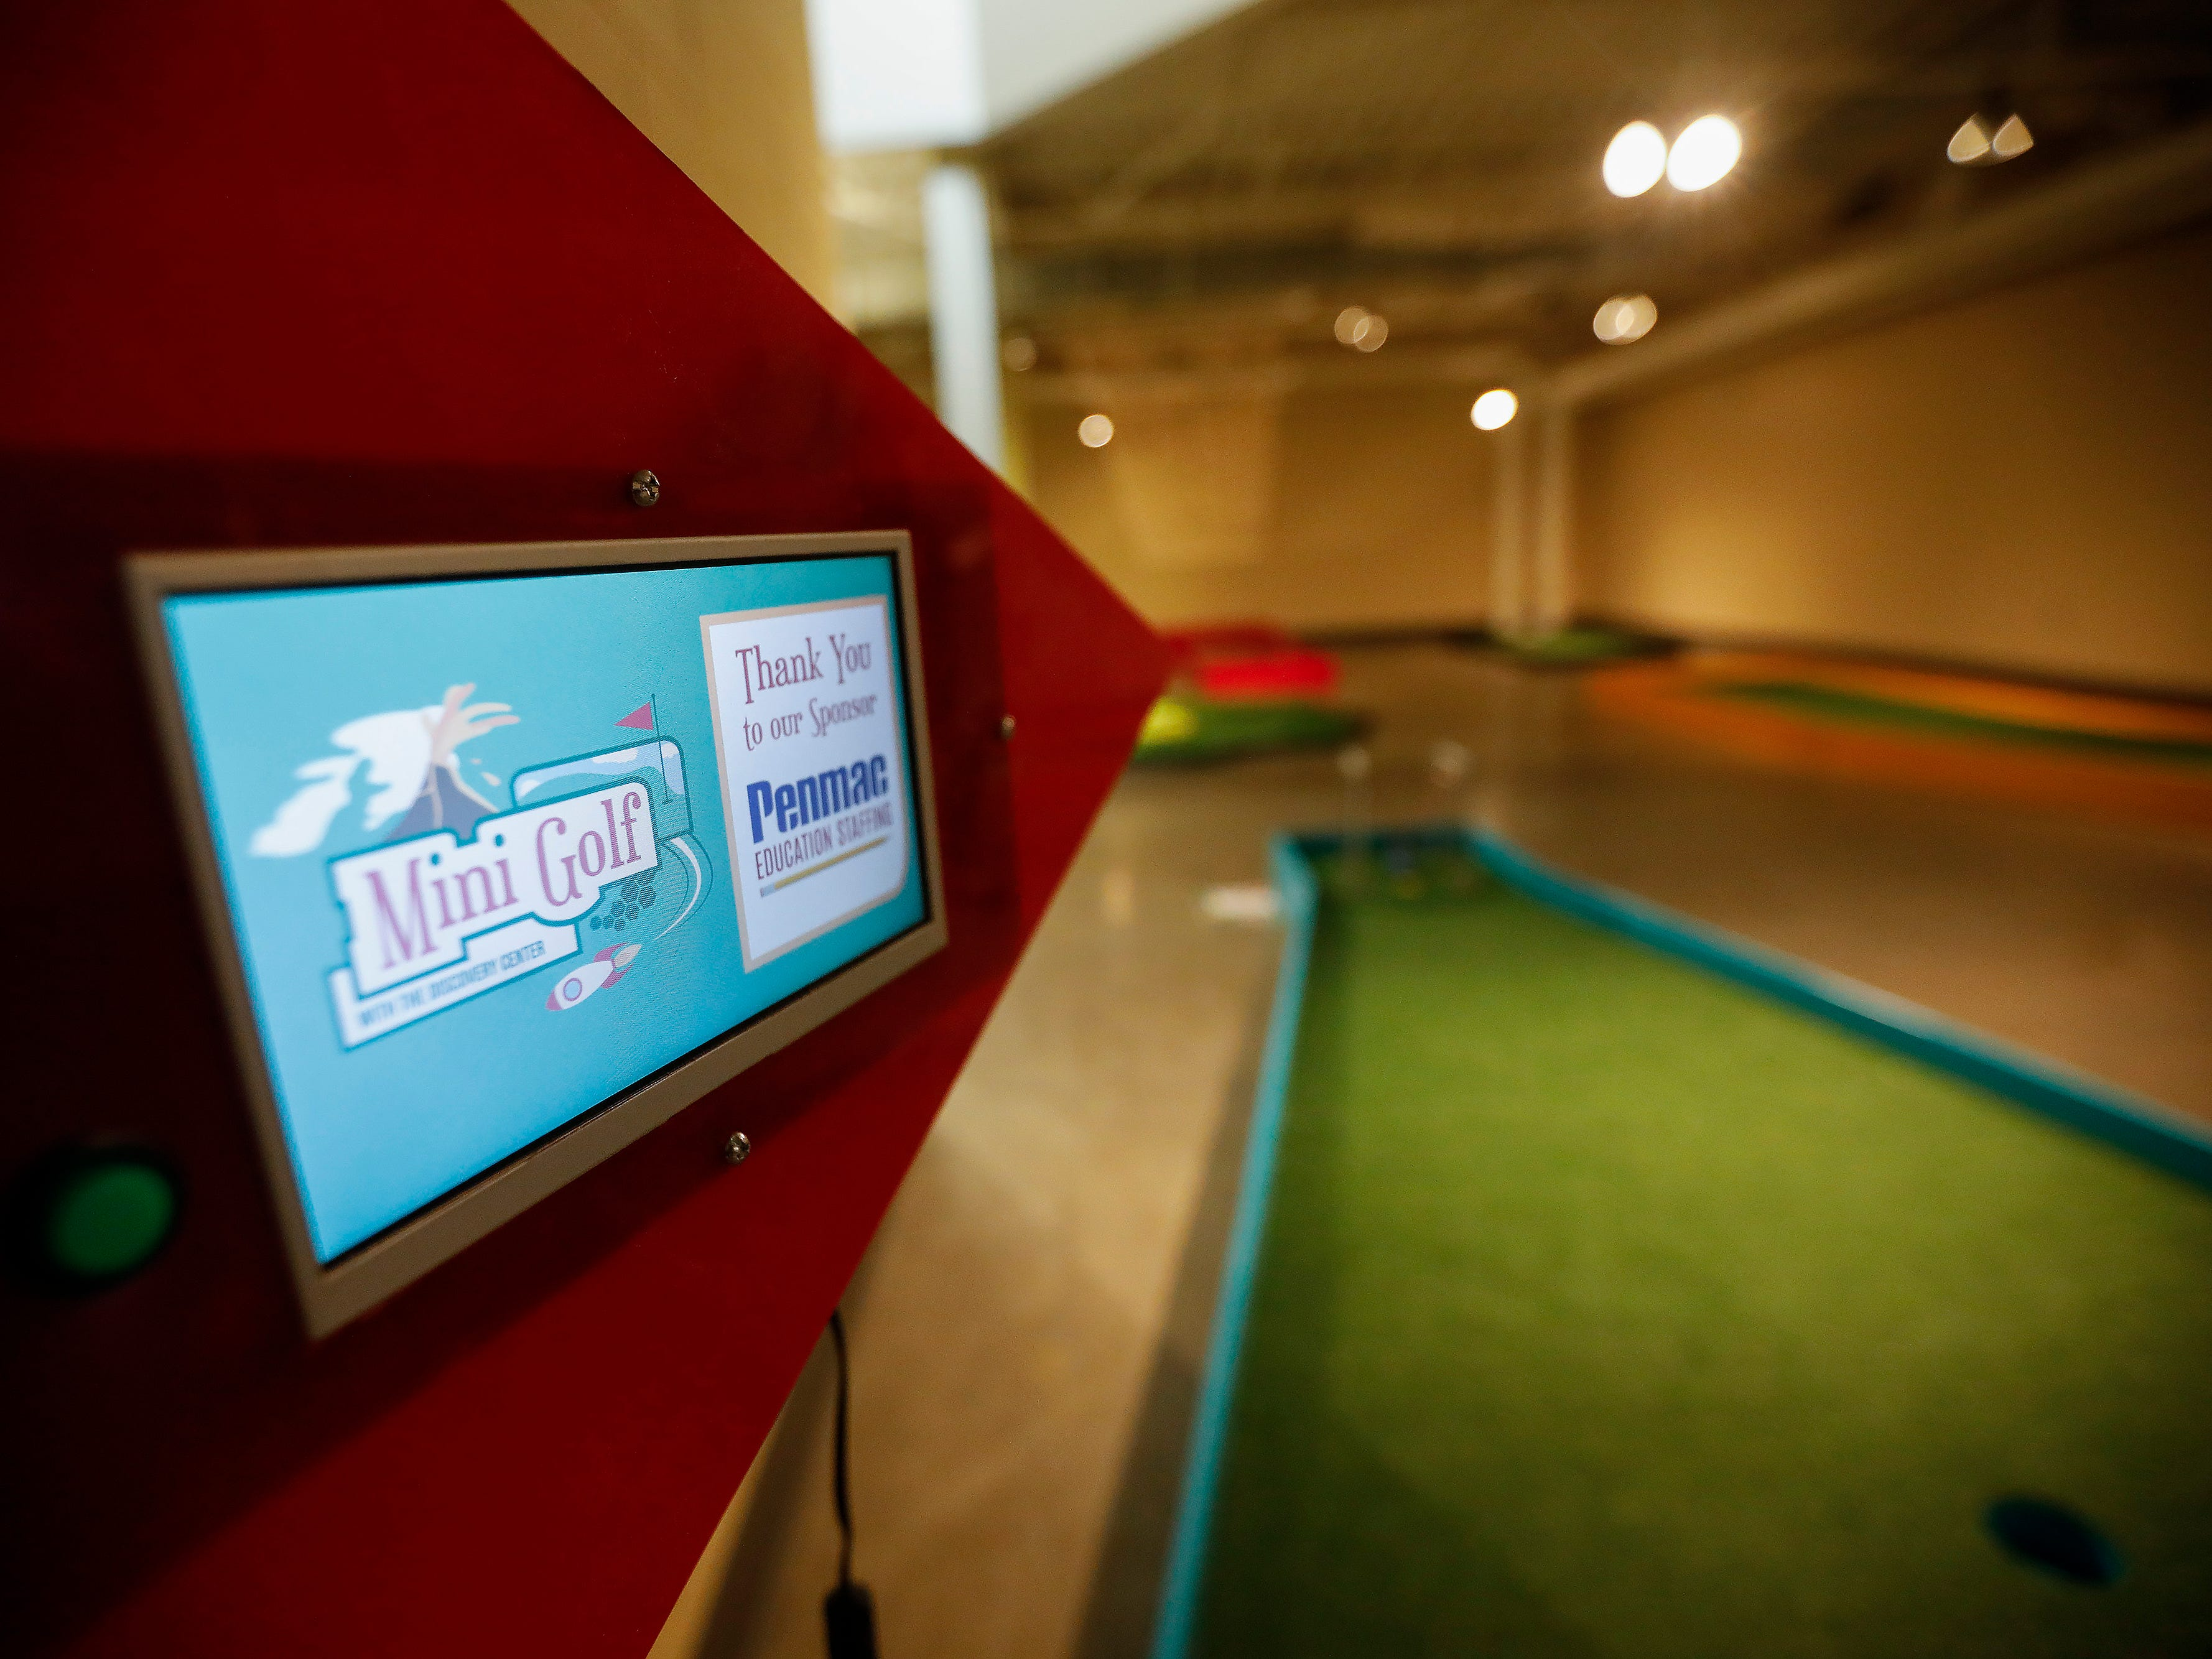 Small video screens at each hole of the new 9-hole indoor miniature golf course at the Discovery Center will play a message from sponsors and deliver a science lesson. The new exhibit opens to the public on Sunday, March 31, 2019.